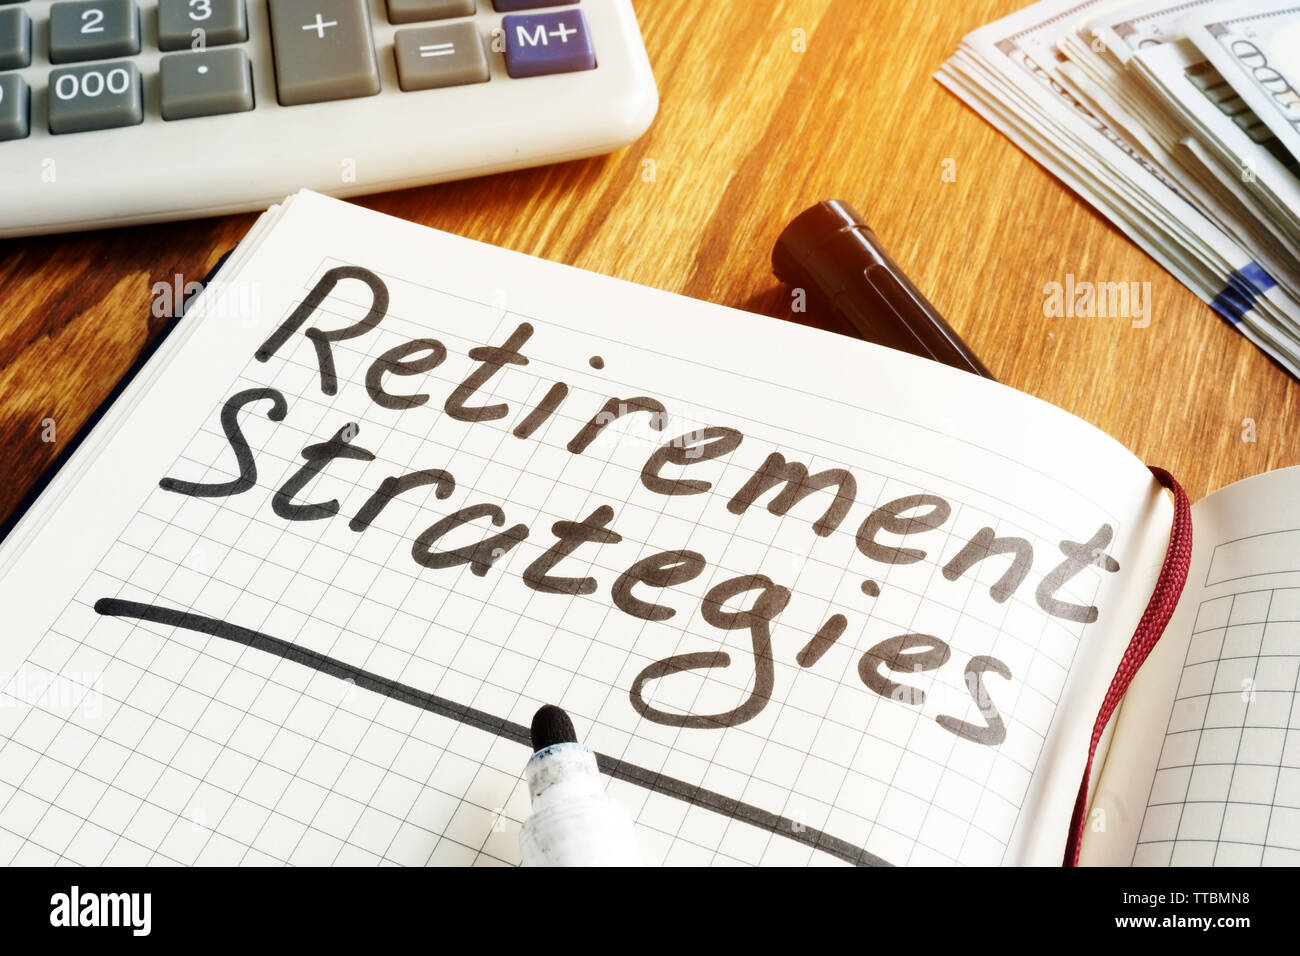 Retirement strategies and pension plan concept. Notebook and pen. - Stock Image